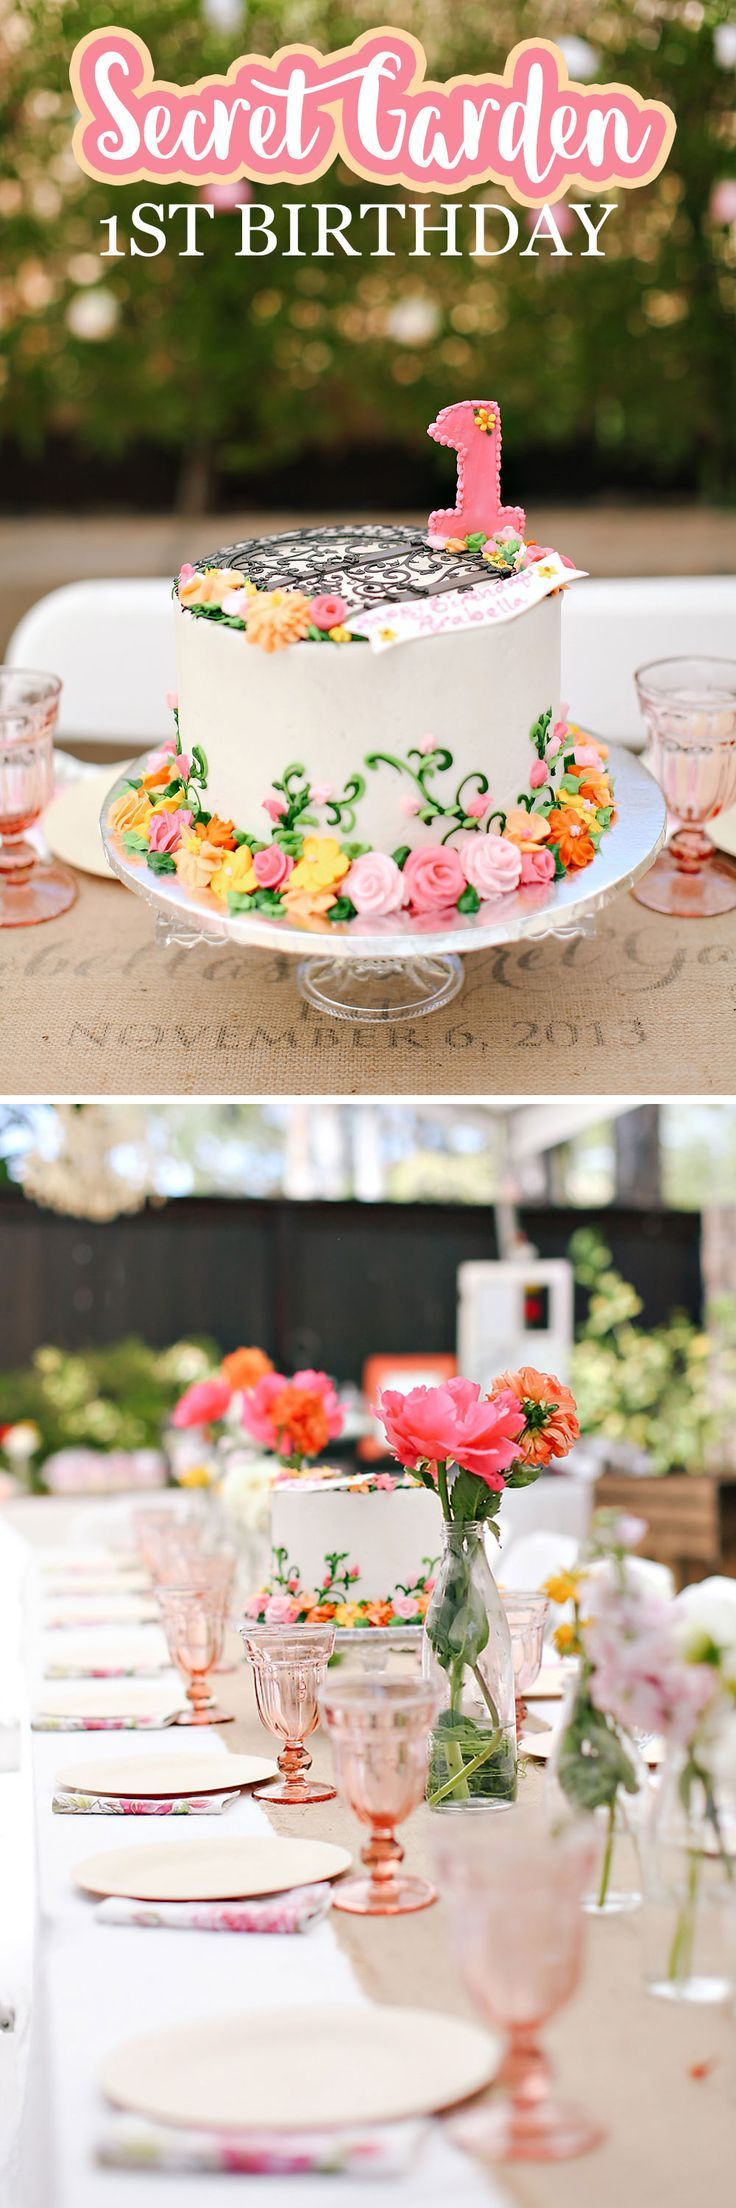 Garden Party Ideas Pinterest jenny tamplin interiors college station tx garden party A Secret Garden Themed 1st Birthday